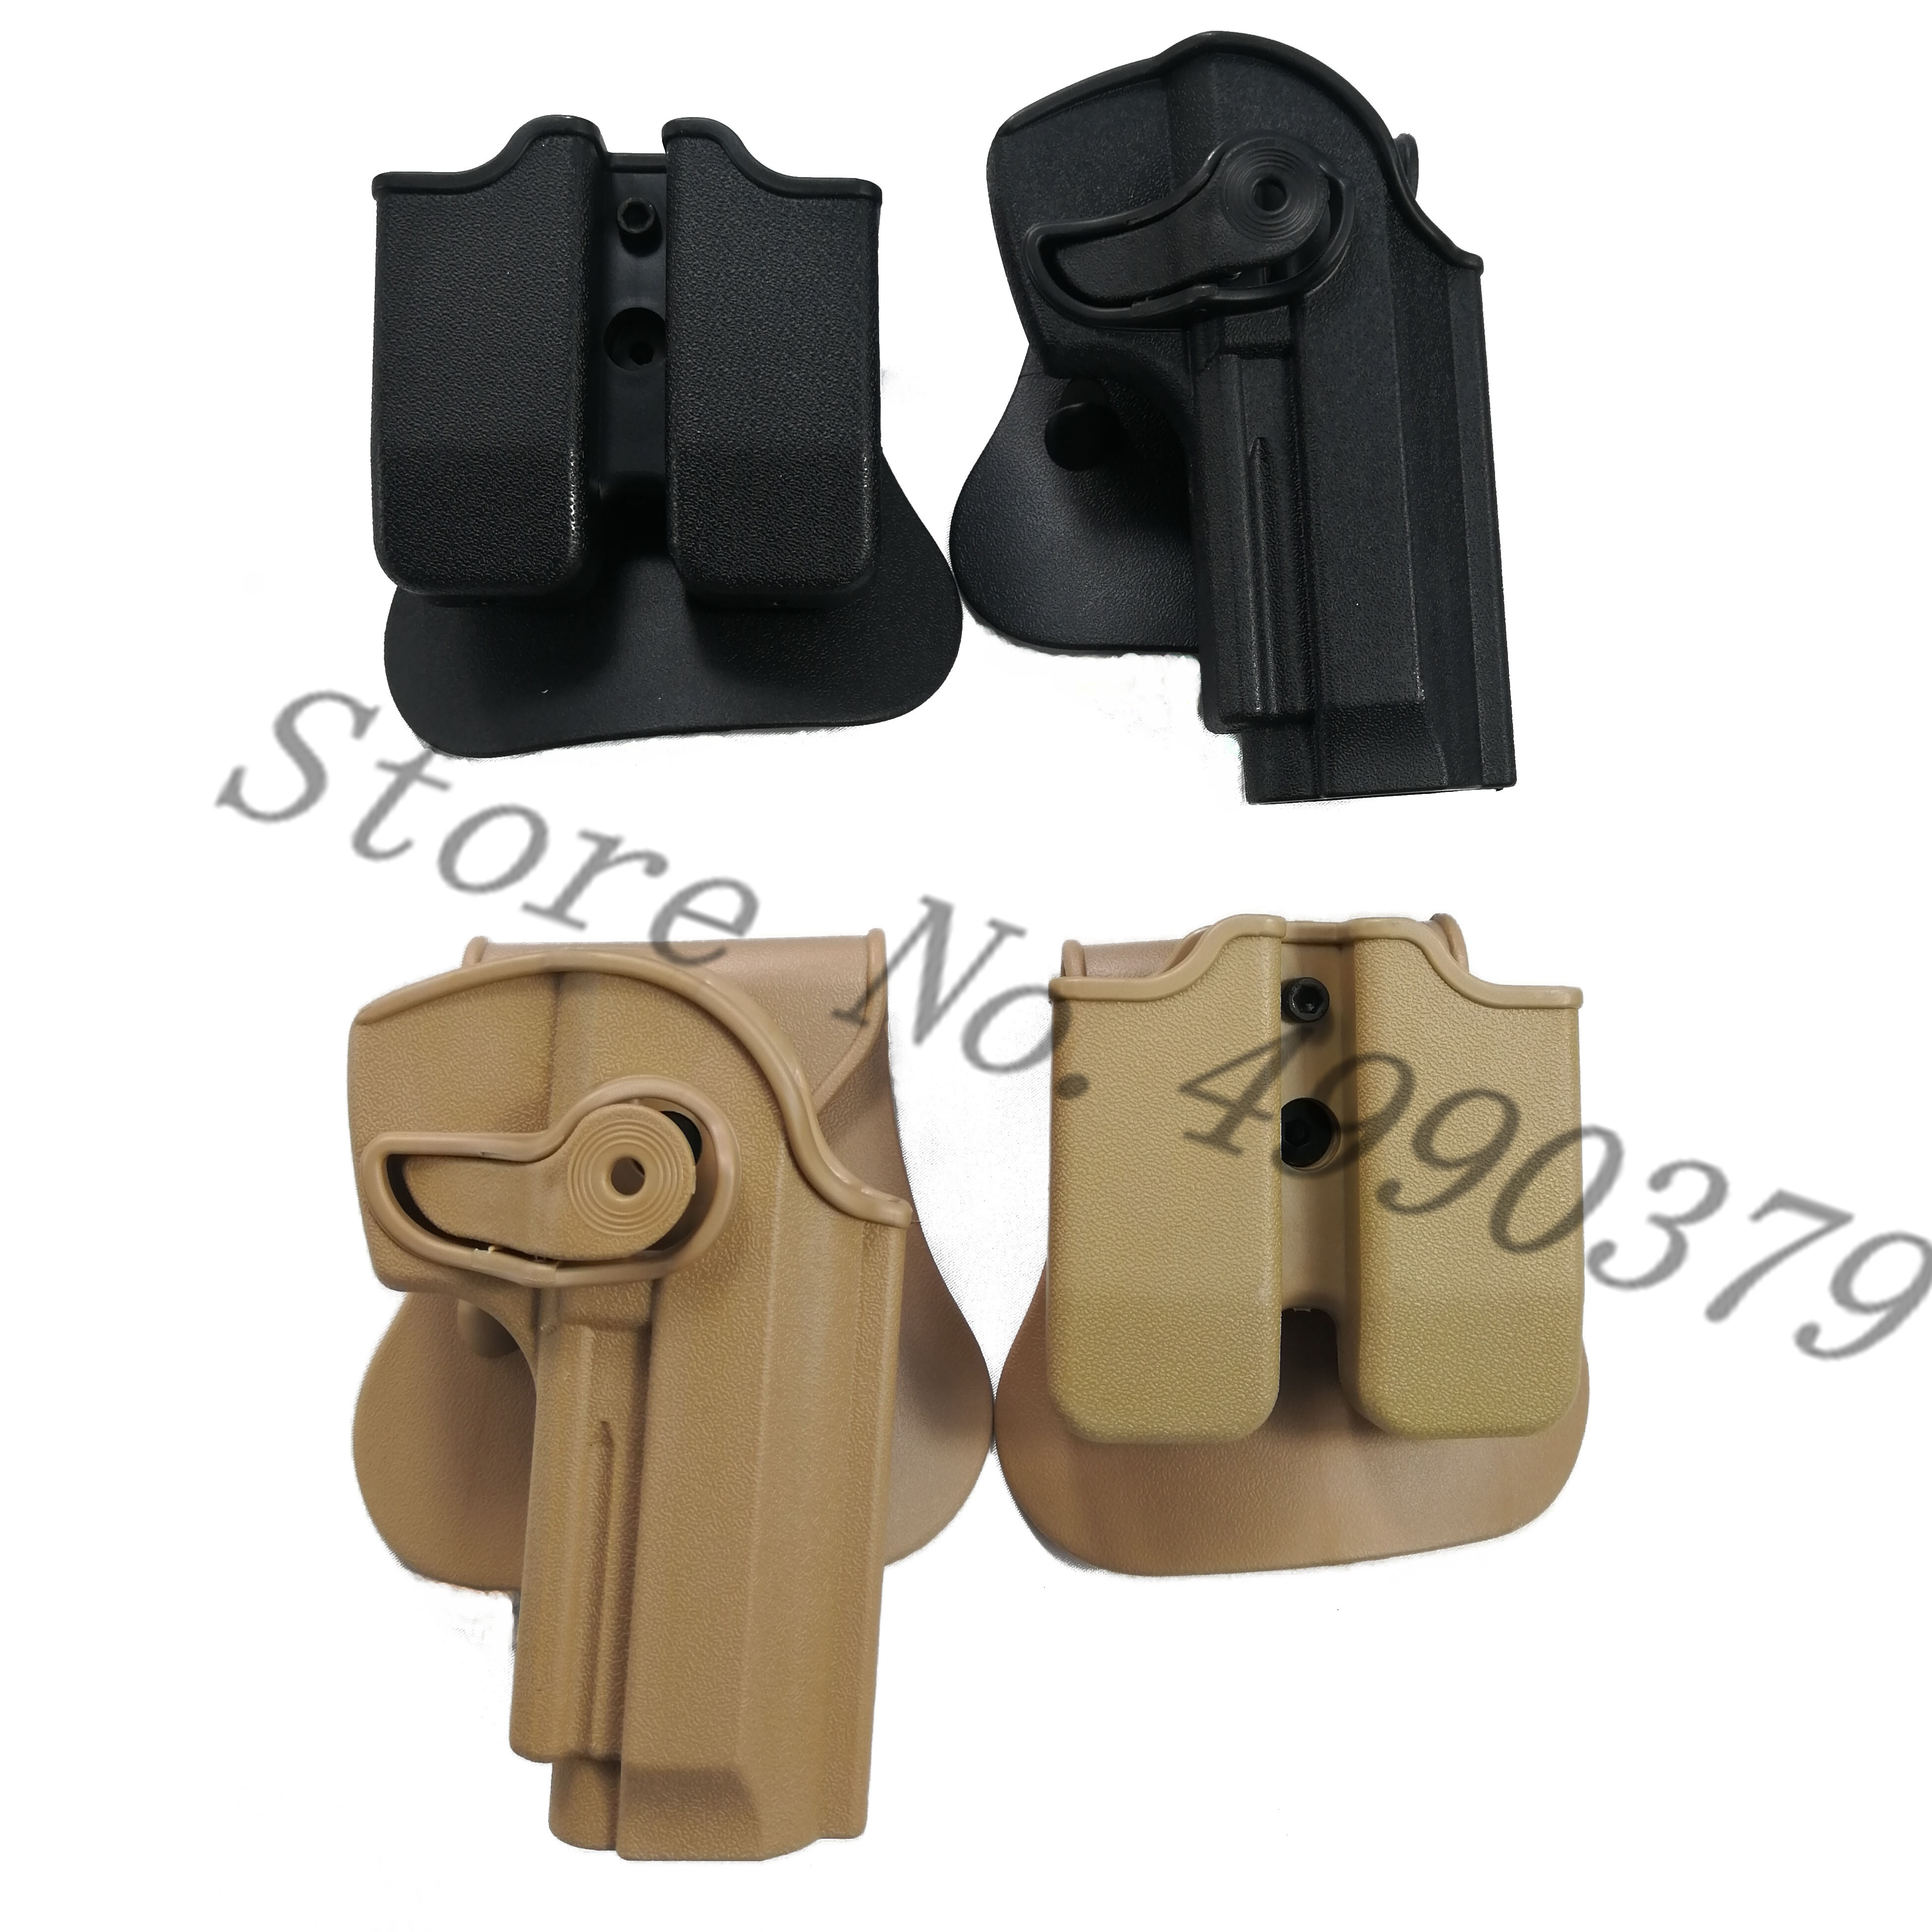 Image 2 - M9 Holster Tactical IMI Right Hand BERETTA M92 Holster Paddle Pistol Gun Holster Gun Airsoft Case Hunting Accessories-in Holsters from Sports & Entertainment